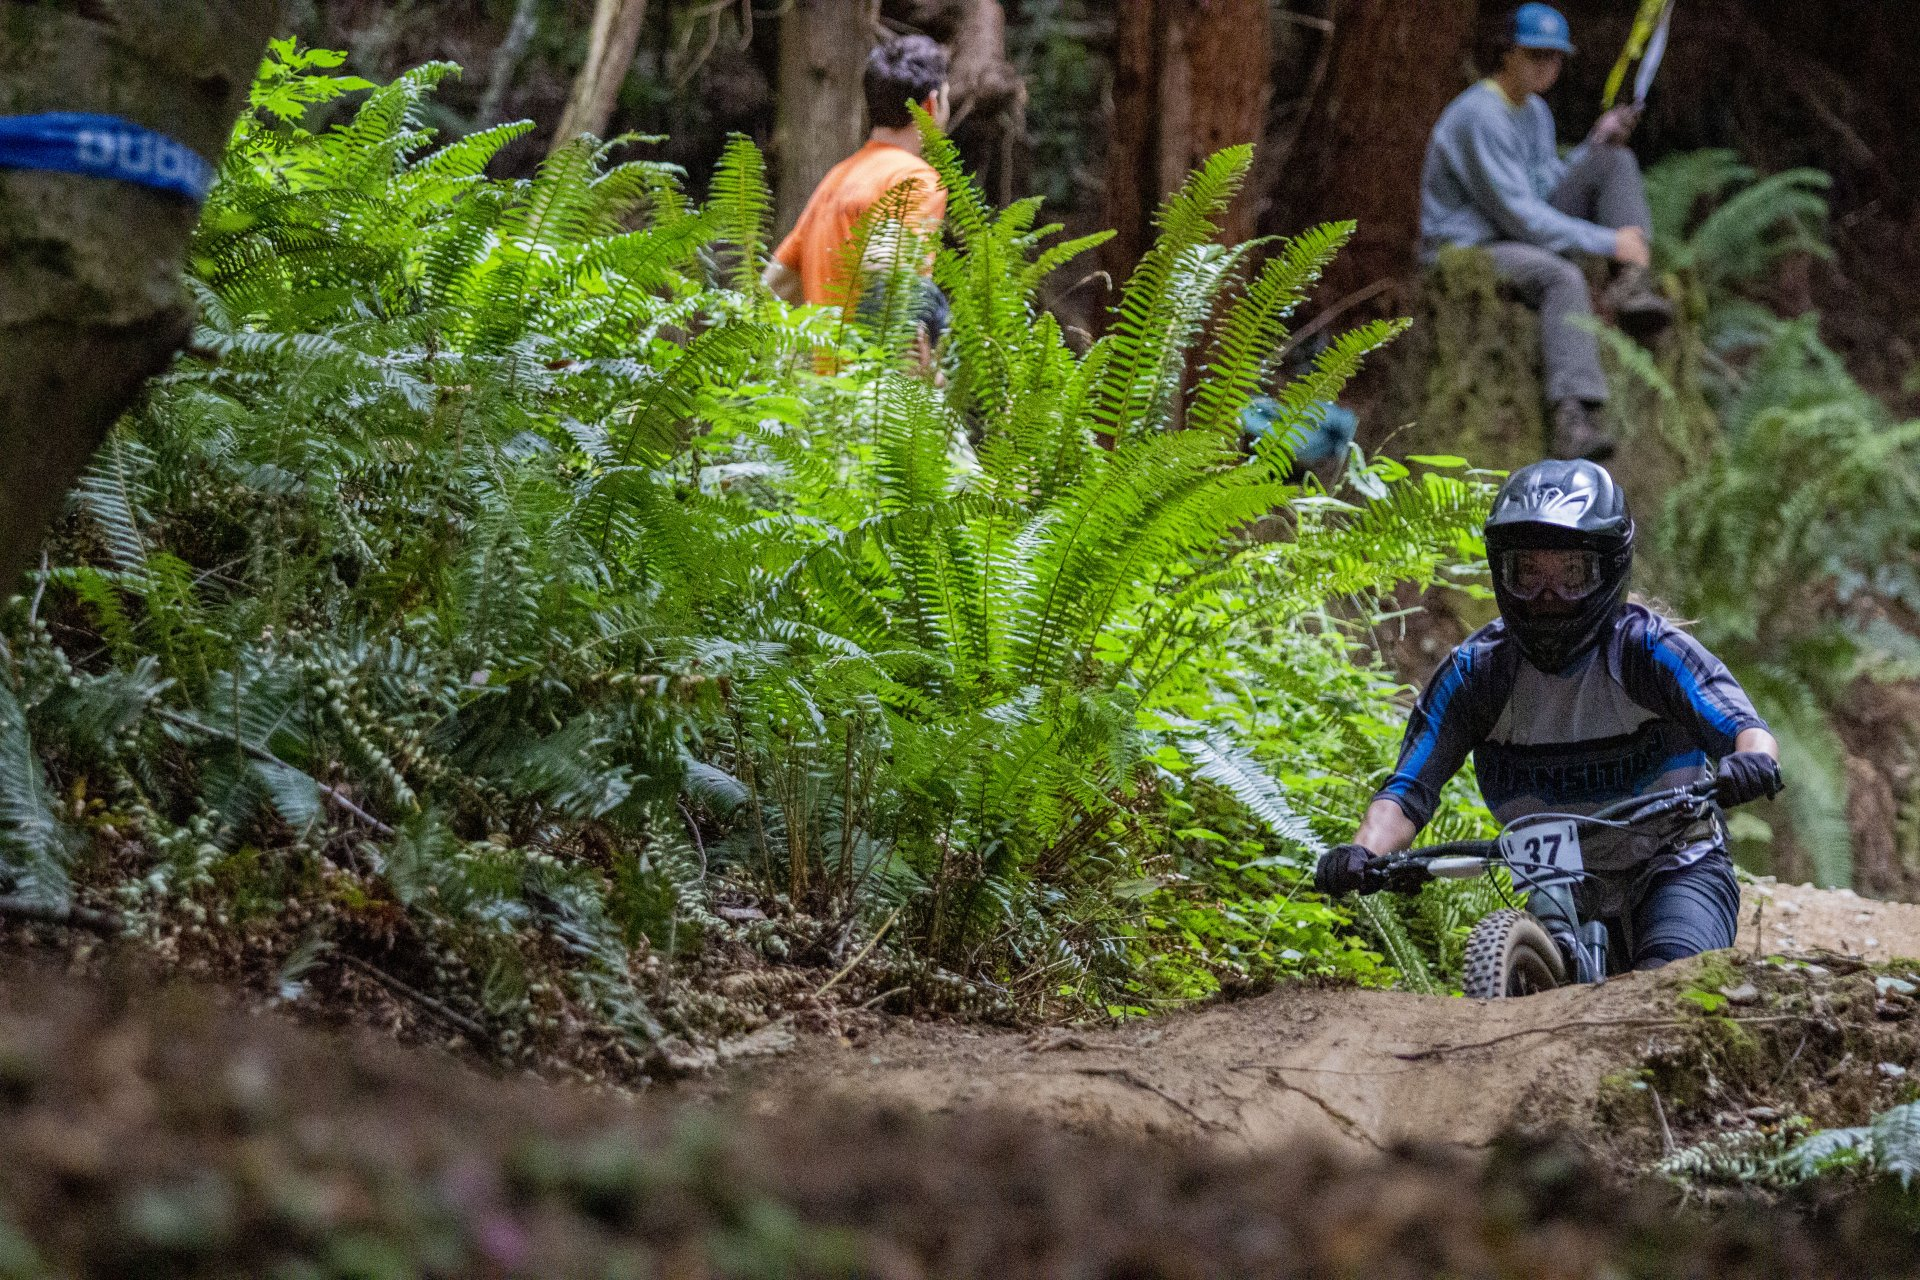 Transition Bikes rider Bonnie Burke makes her way through stage two of the Mad River Enduro course on the way to winning the Open/Pro Women's class on September 7. | Photo by Thomas Lal